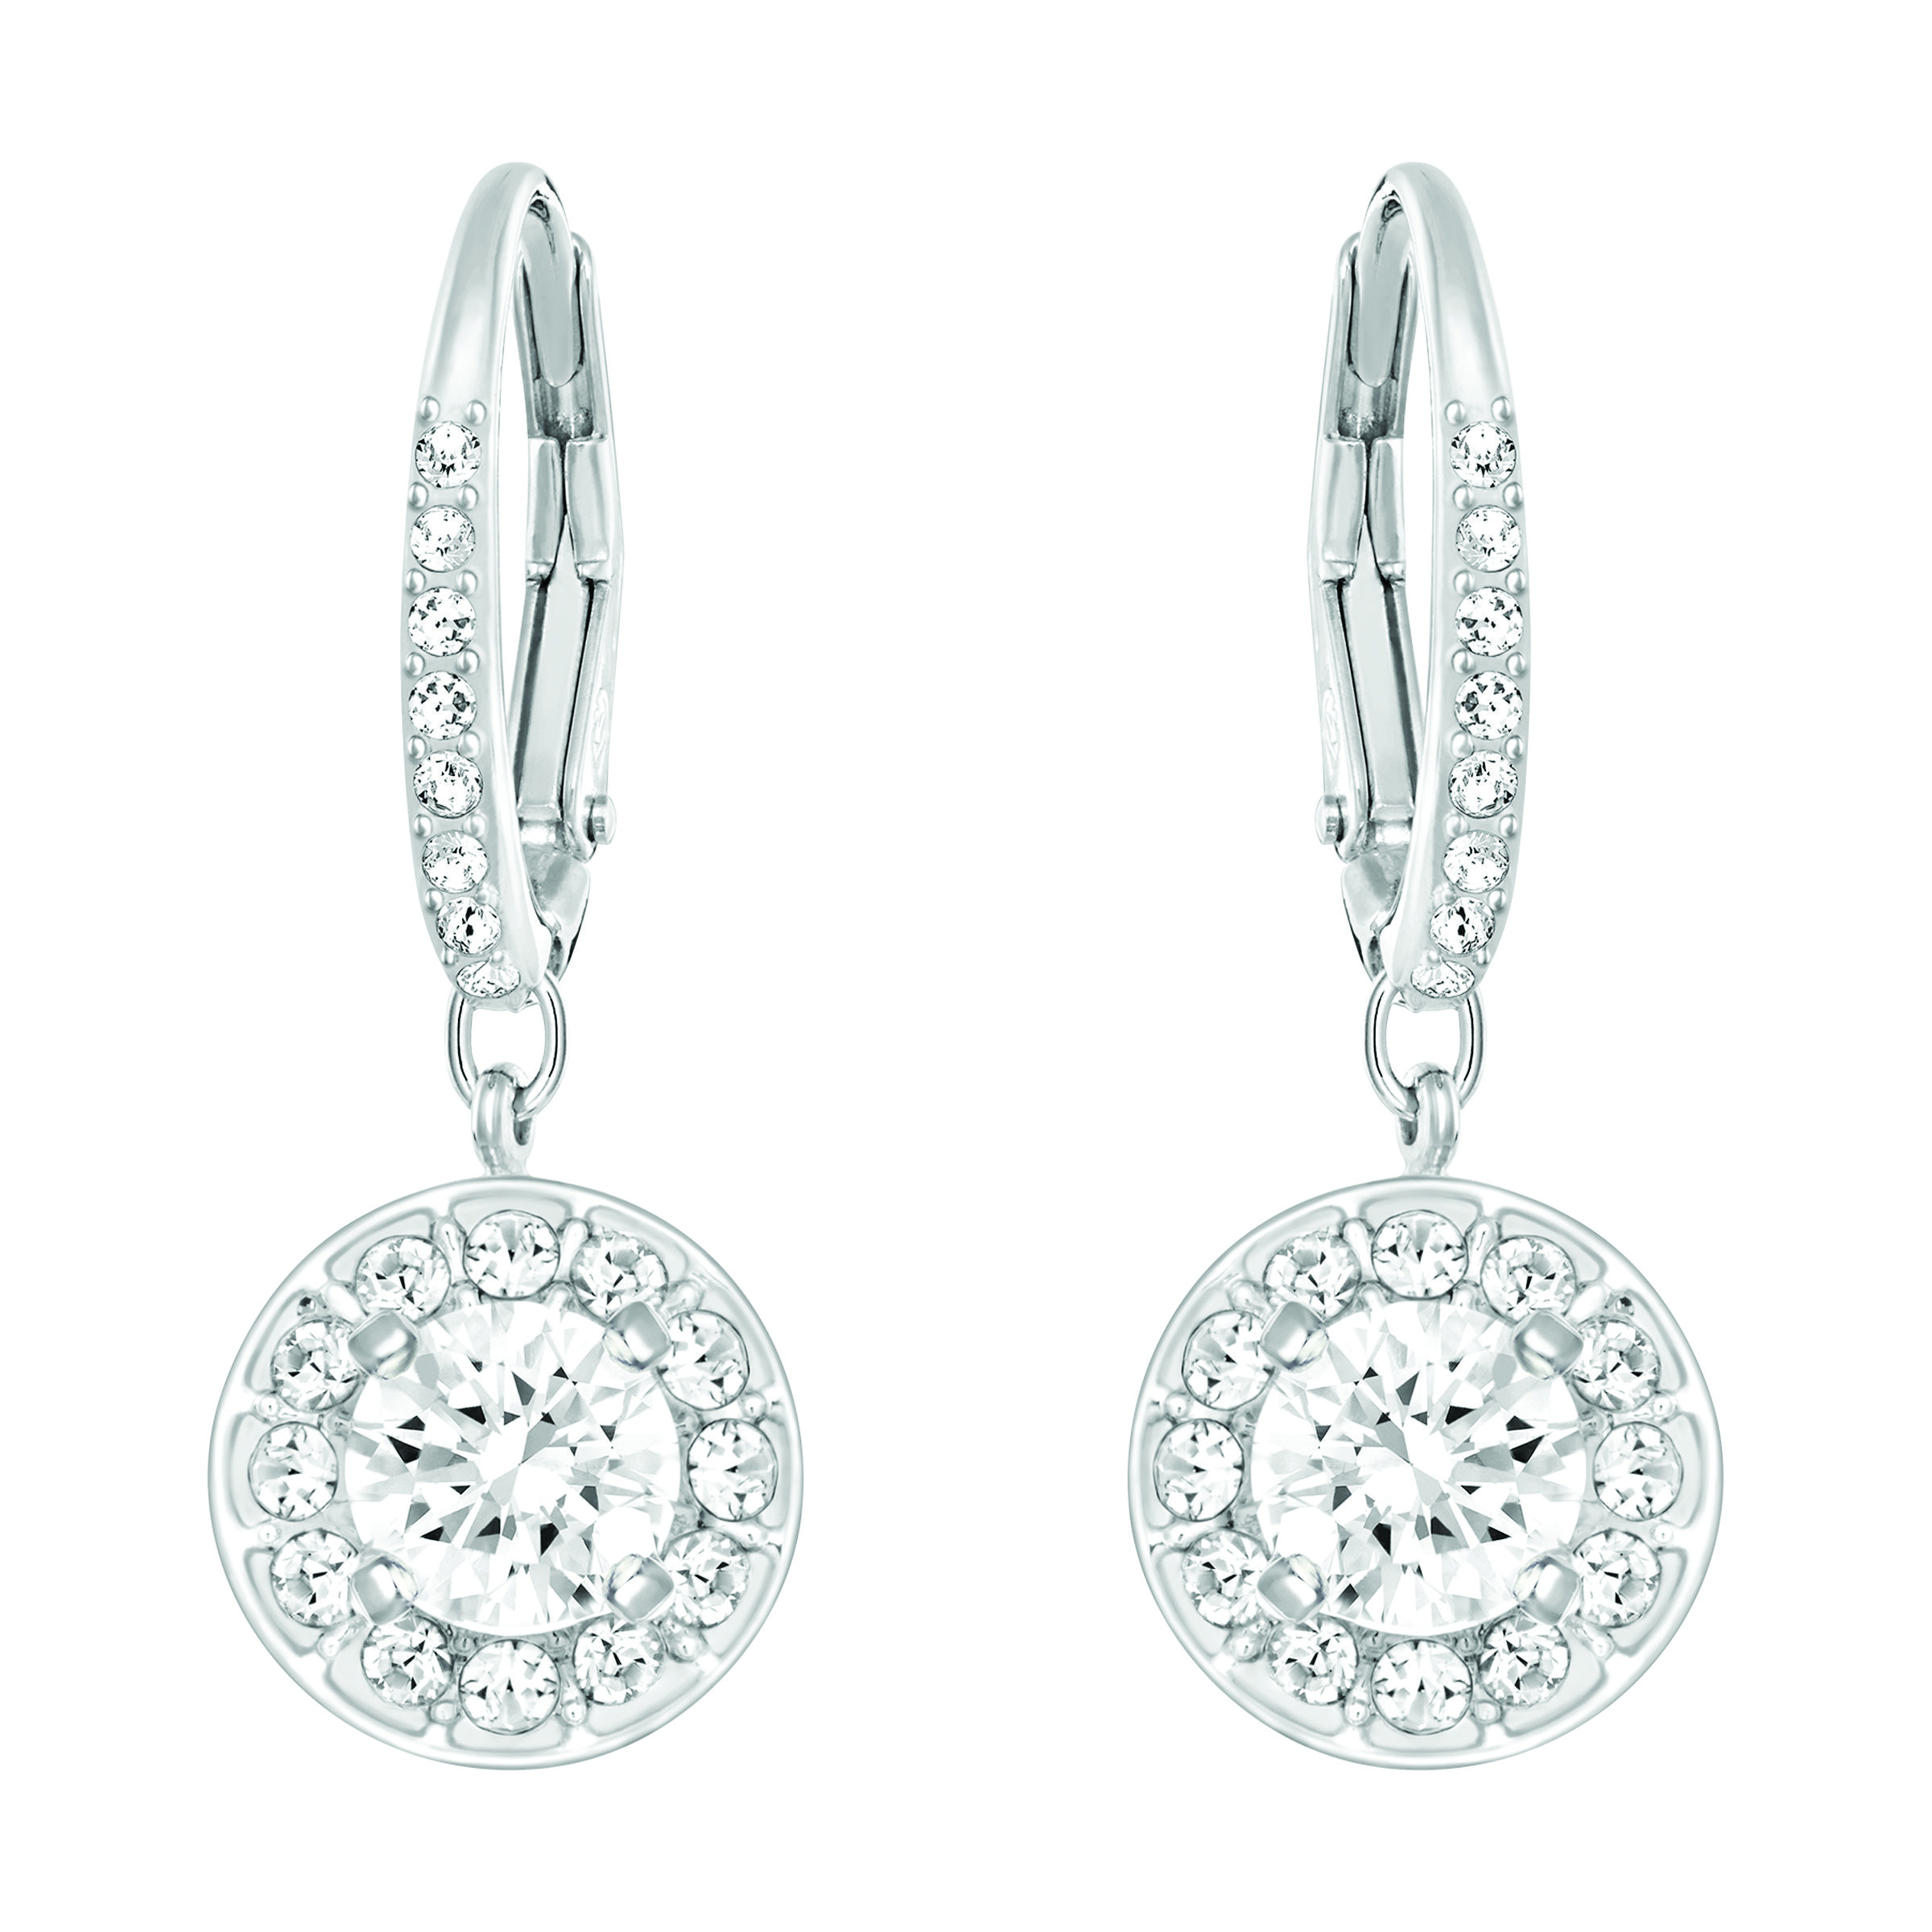 A timeless pair of rhodium-plated earrings for every occasion. Featuring sparkling clear crystal pavé and dangling elements, they give you that brilliant sparkle and combine easily with other Swarovski jewelry.